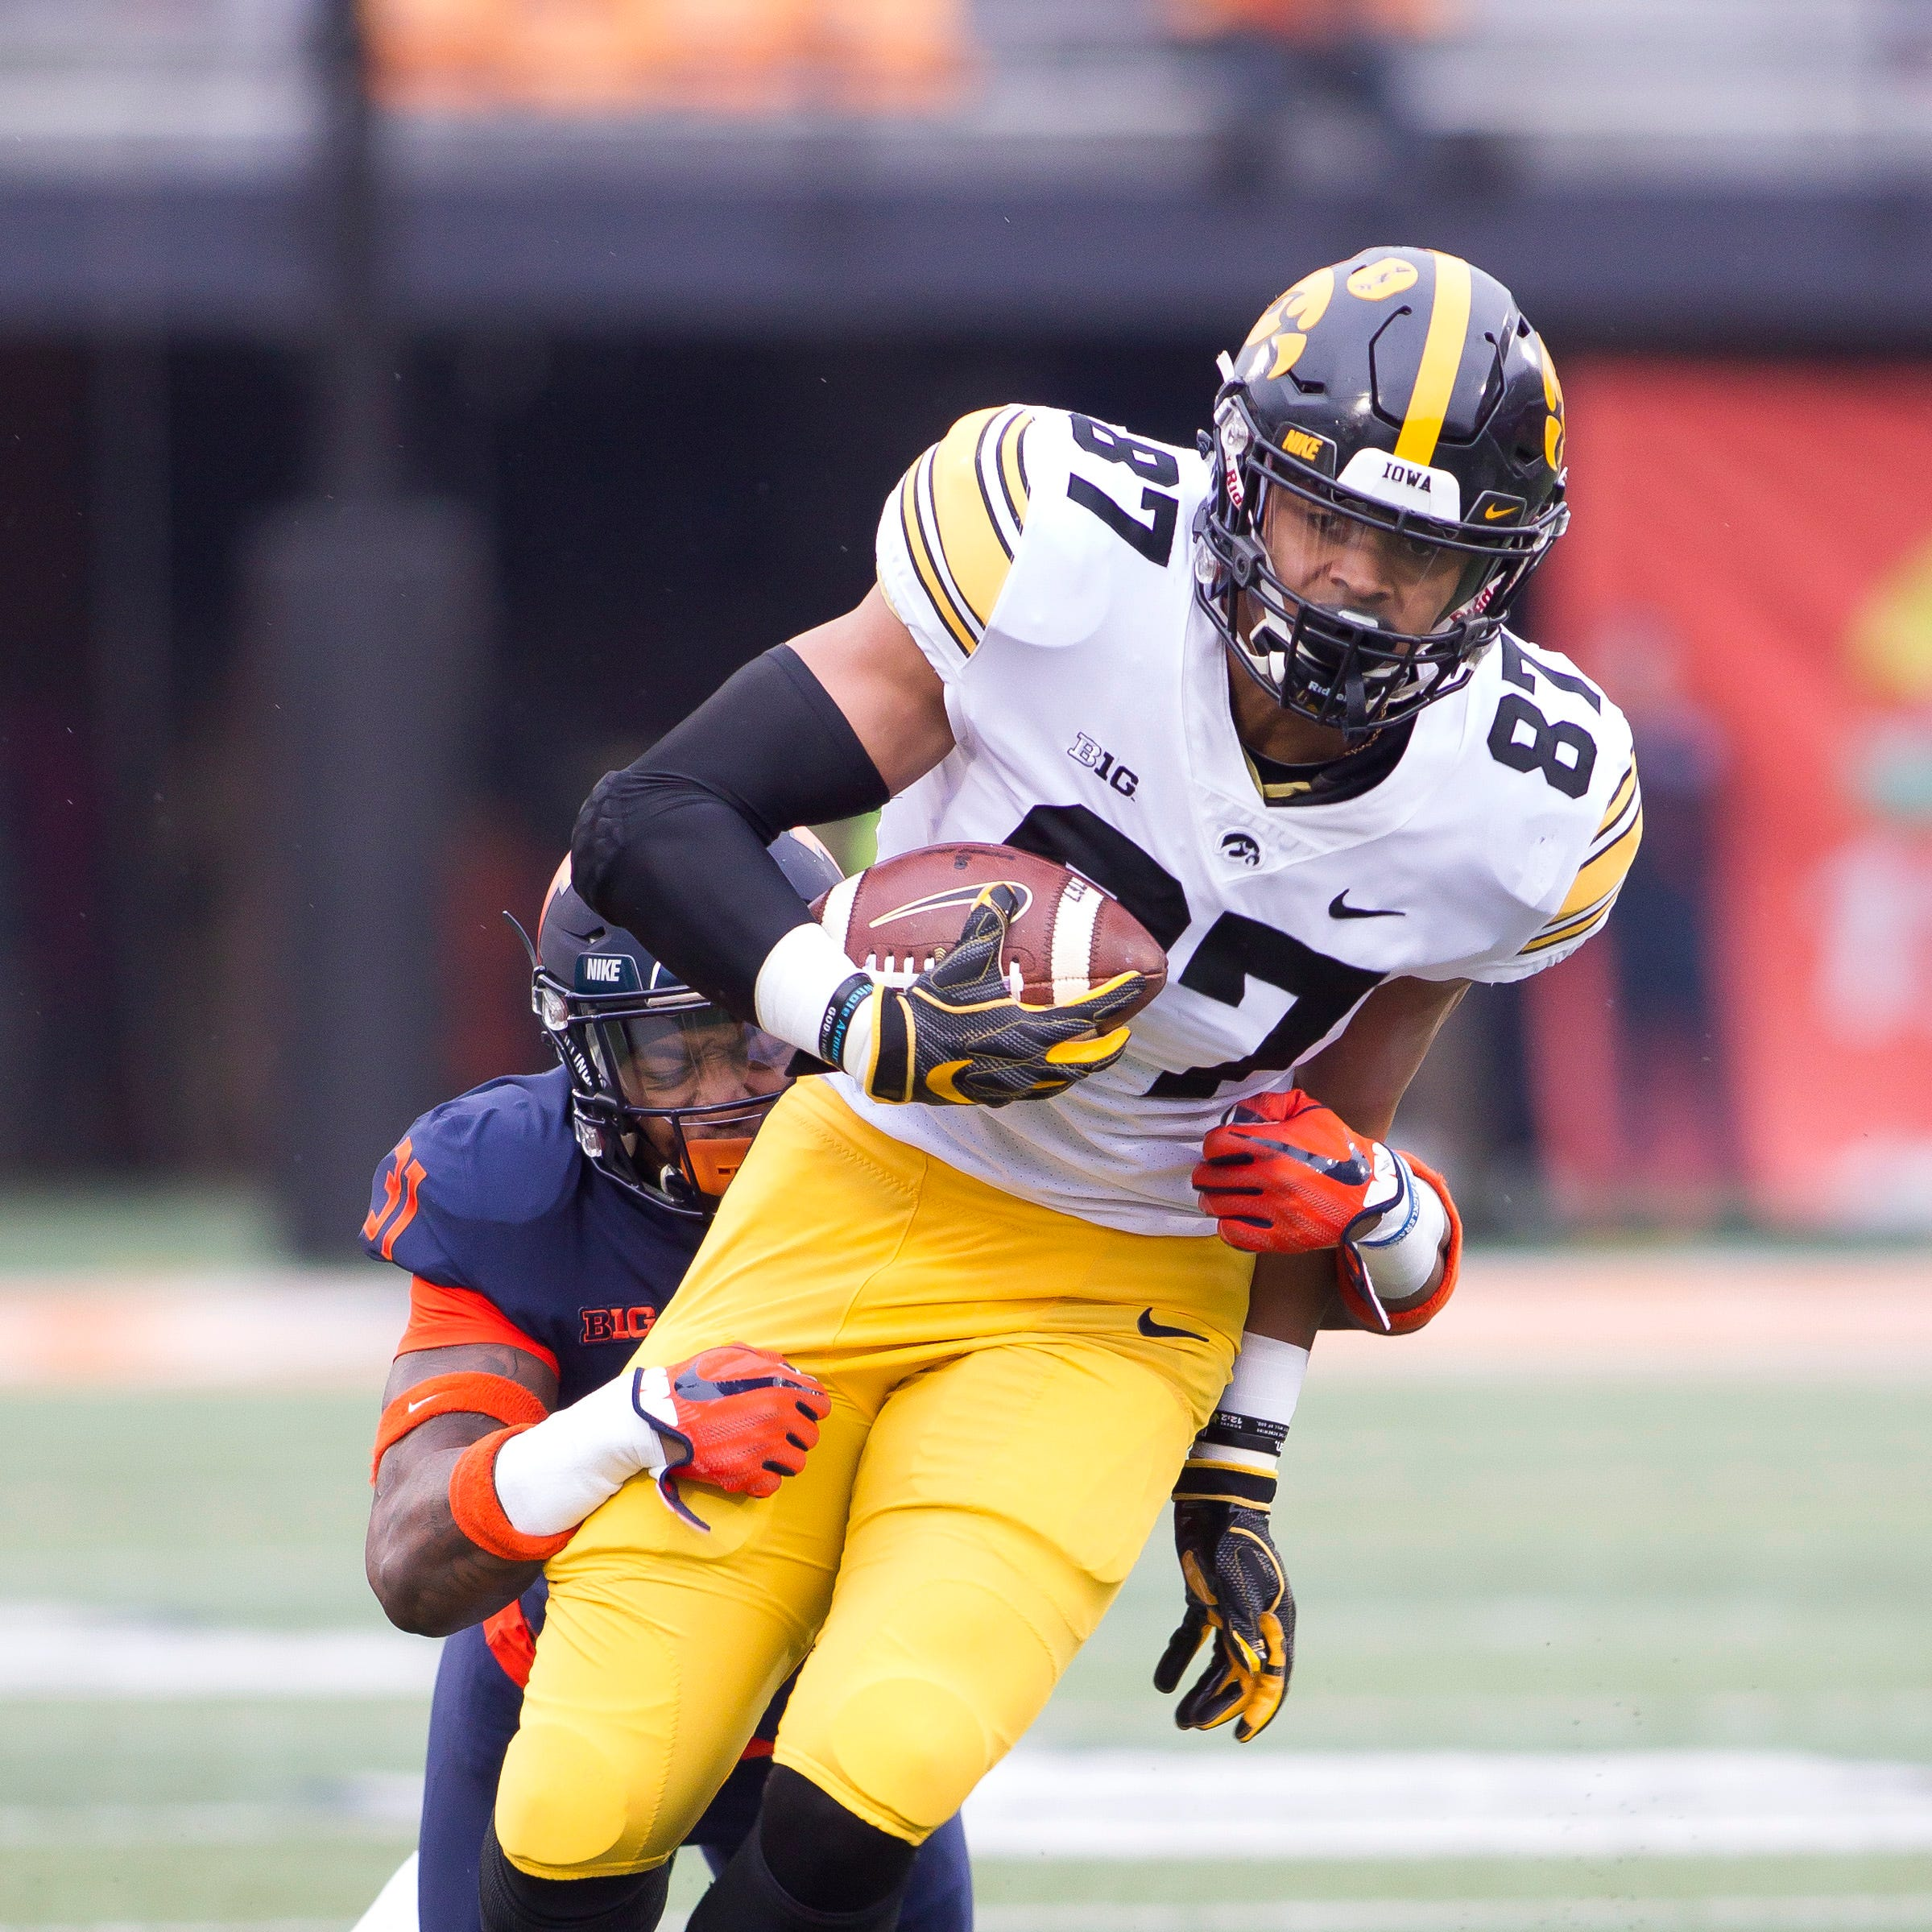 Noah Fant is back in Iowa's game plan, says he's open-minded on NFL talk